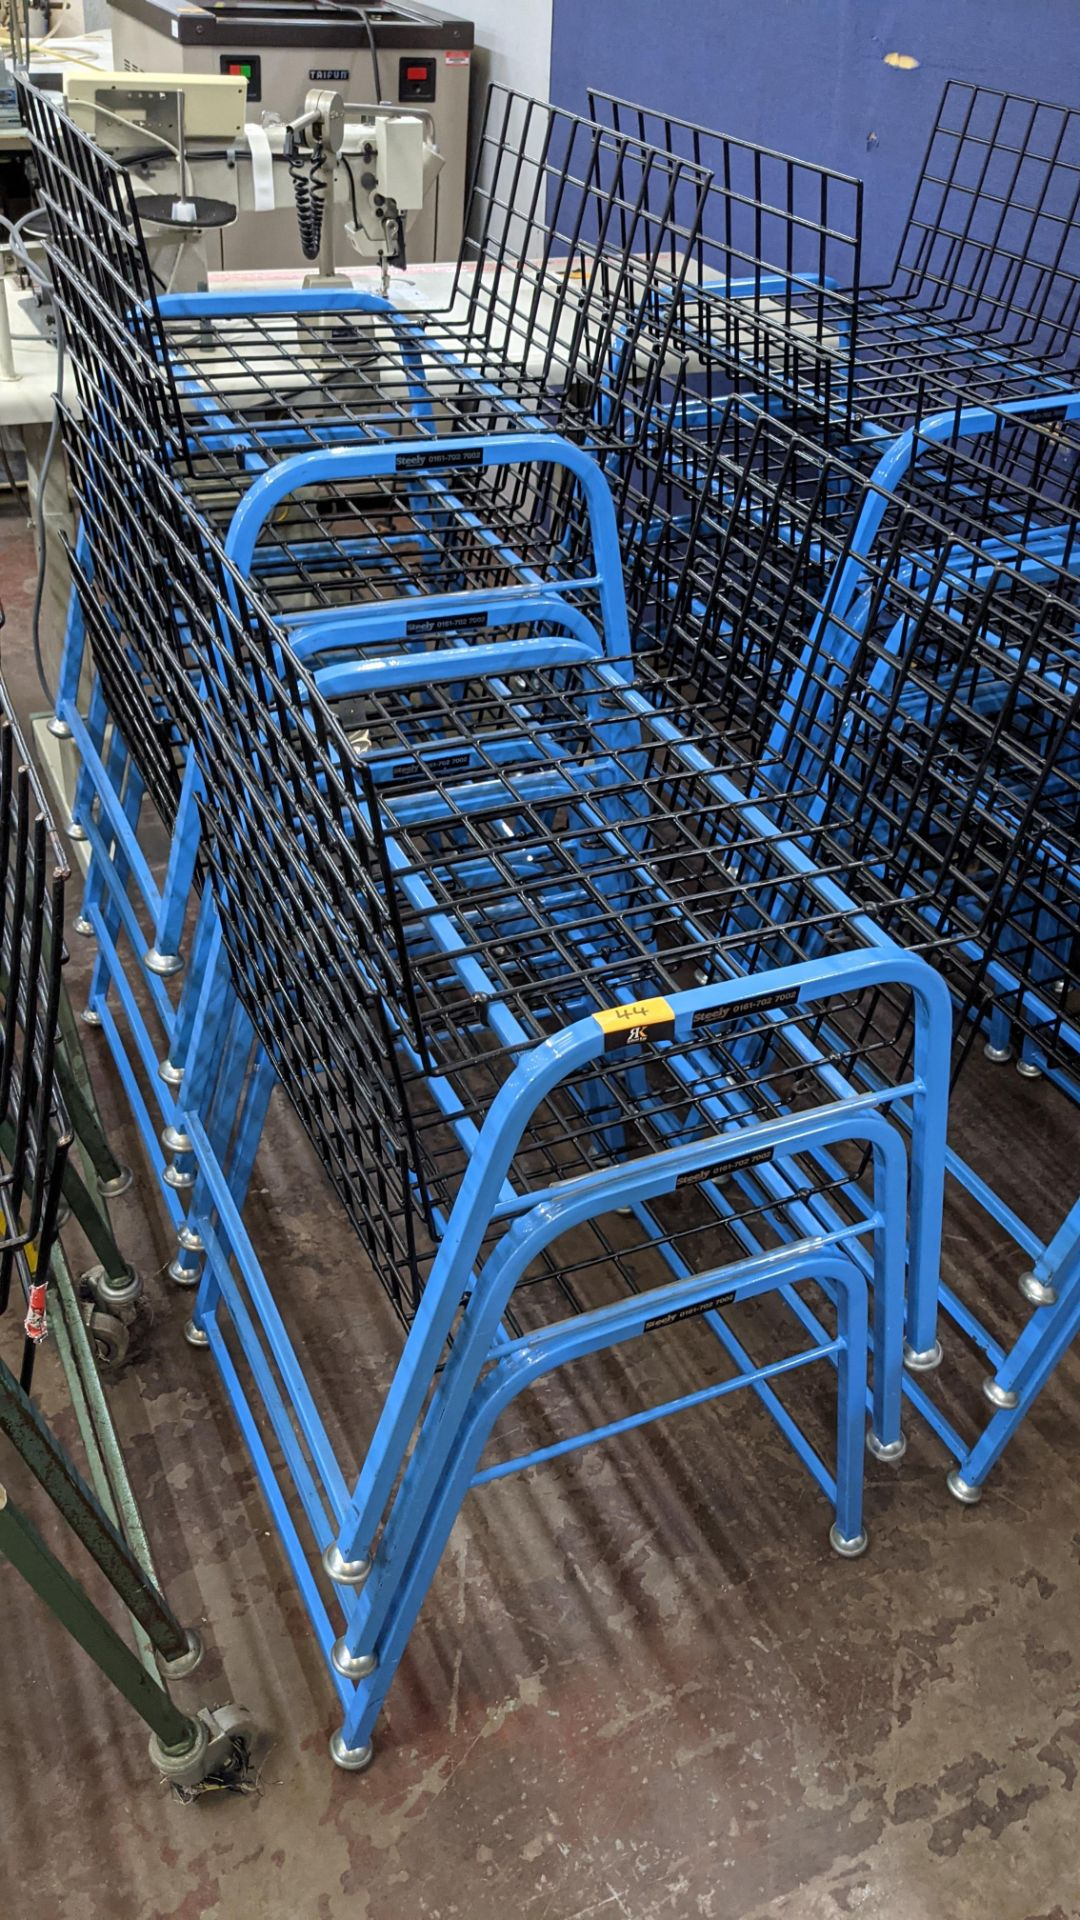 7 off matching blue stacking Steely mobile machinists baskets - Image 3 of 5